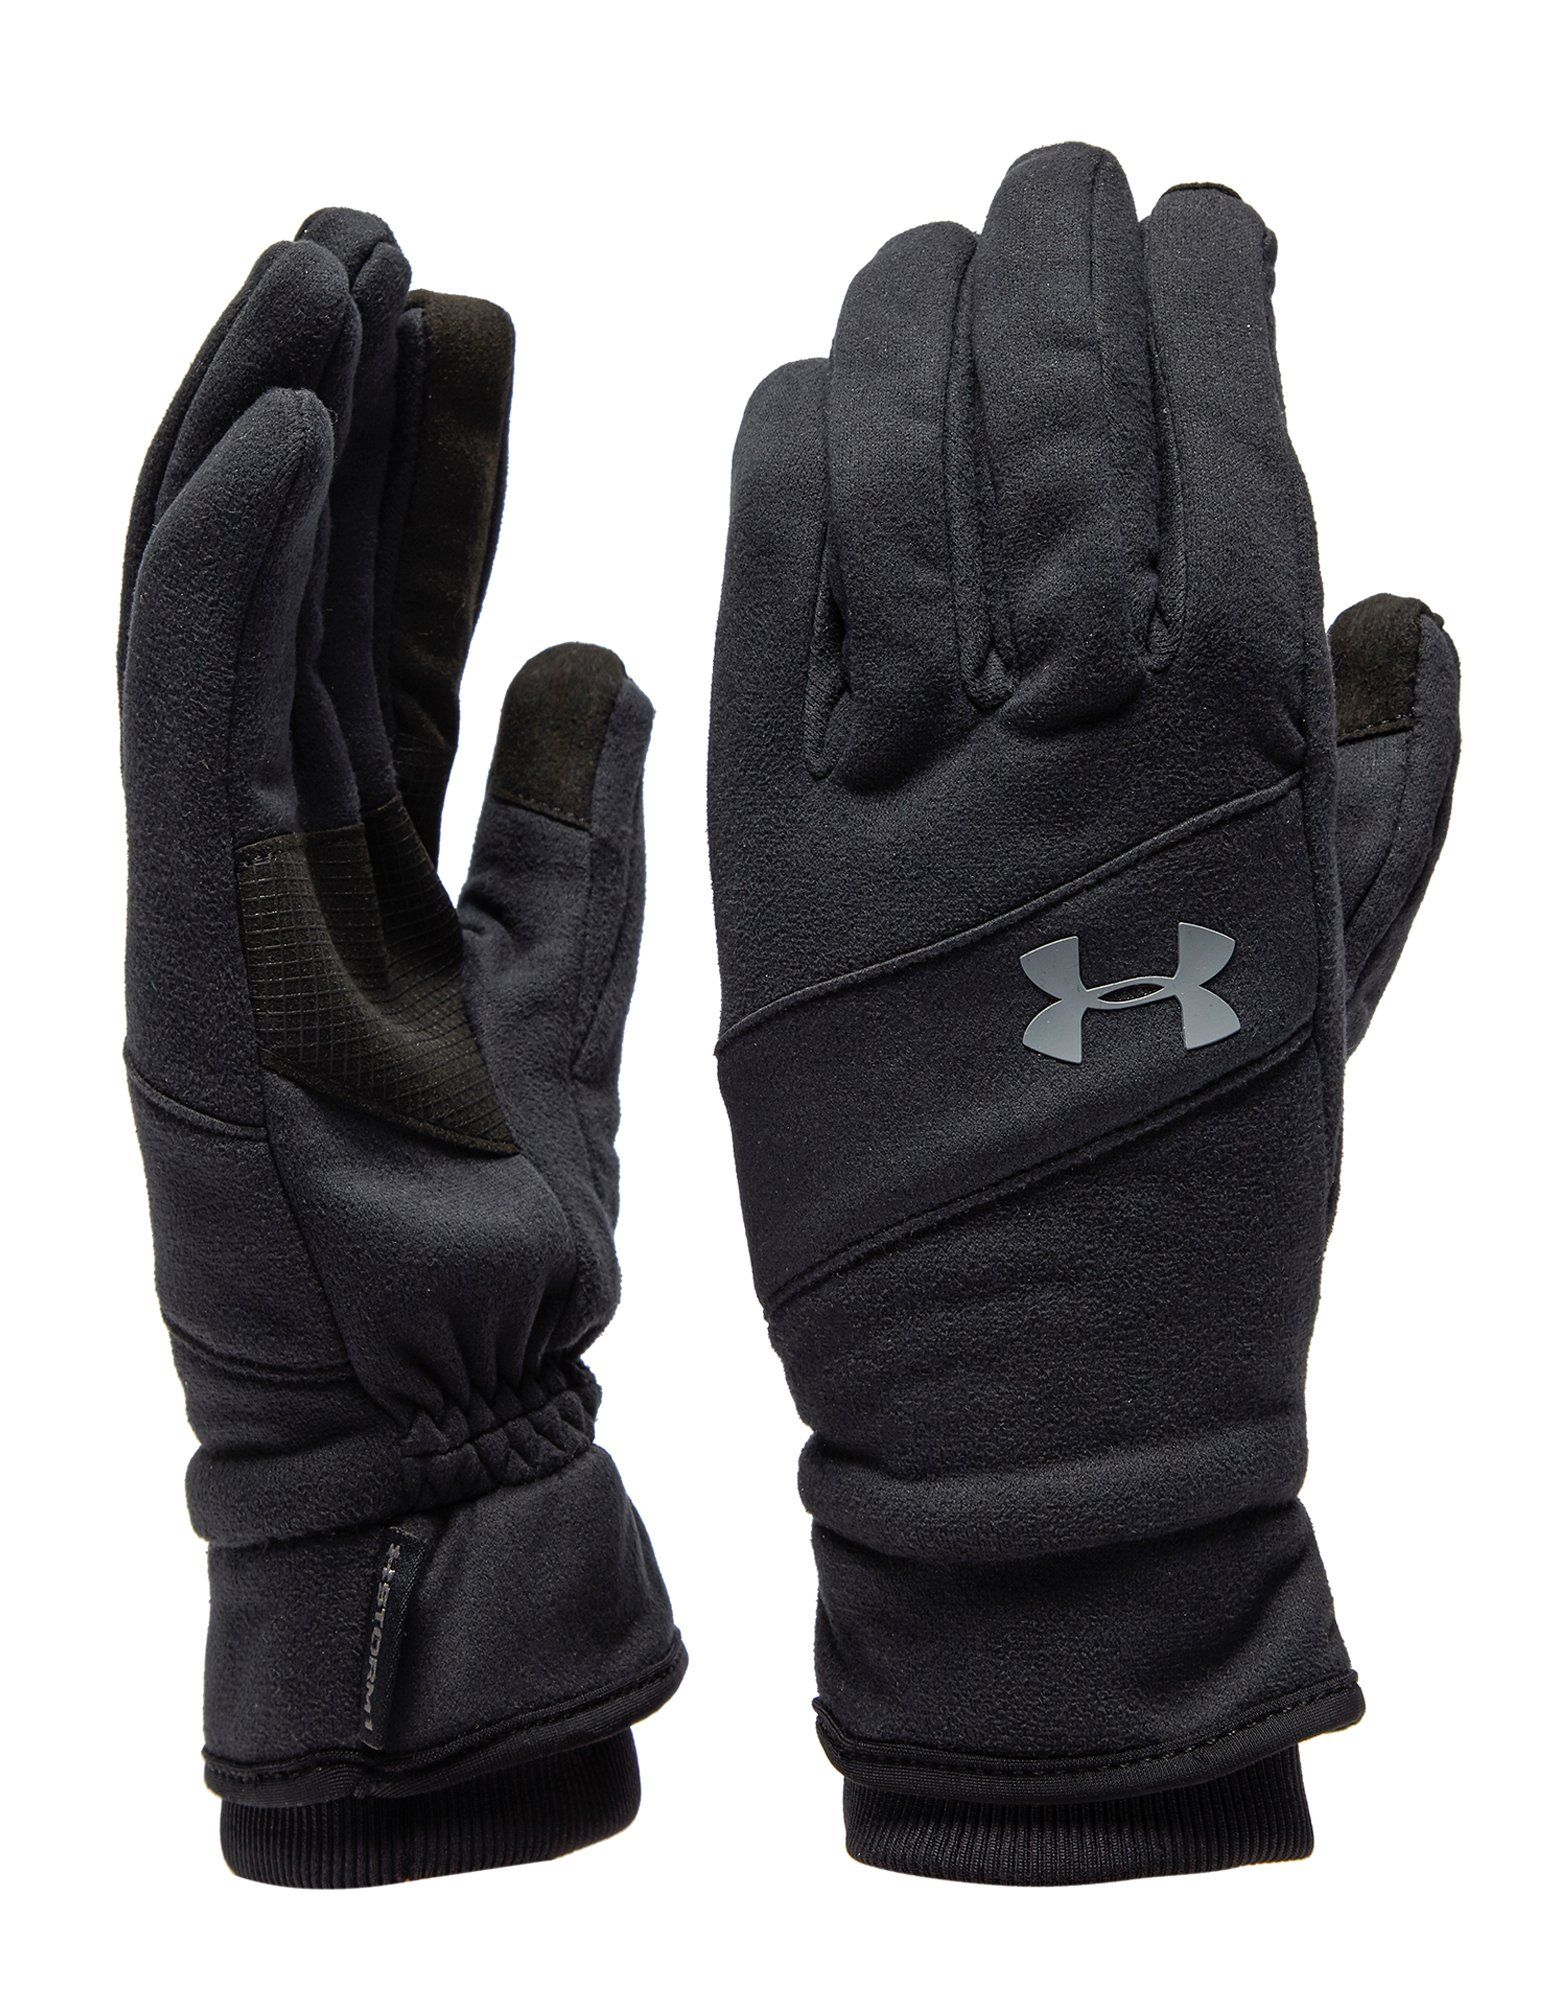 Mens gloves no fingers - Under Armour Storm Coldgear Infrared Elements Gloves